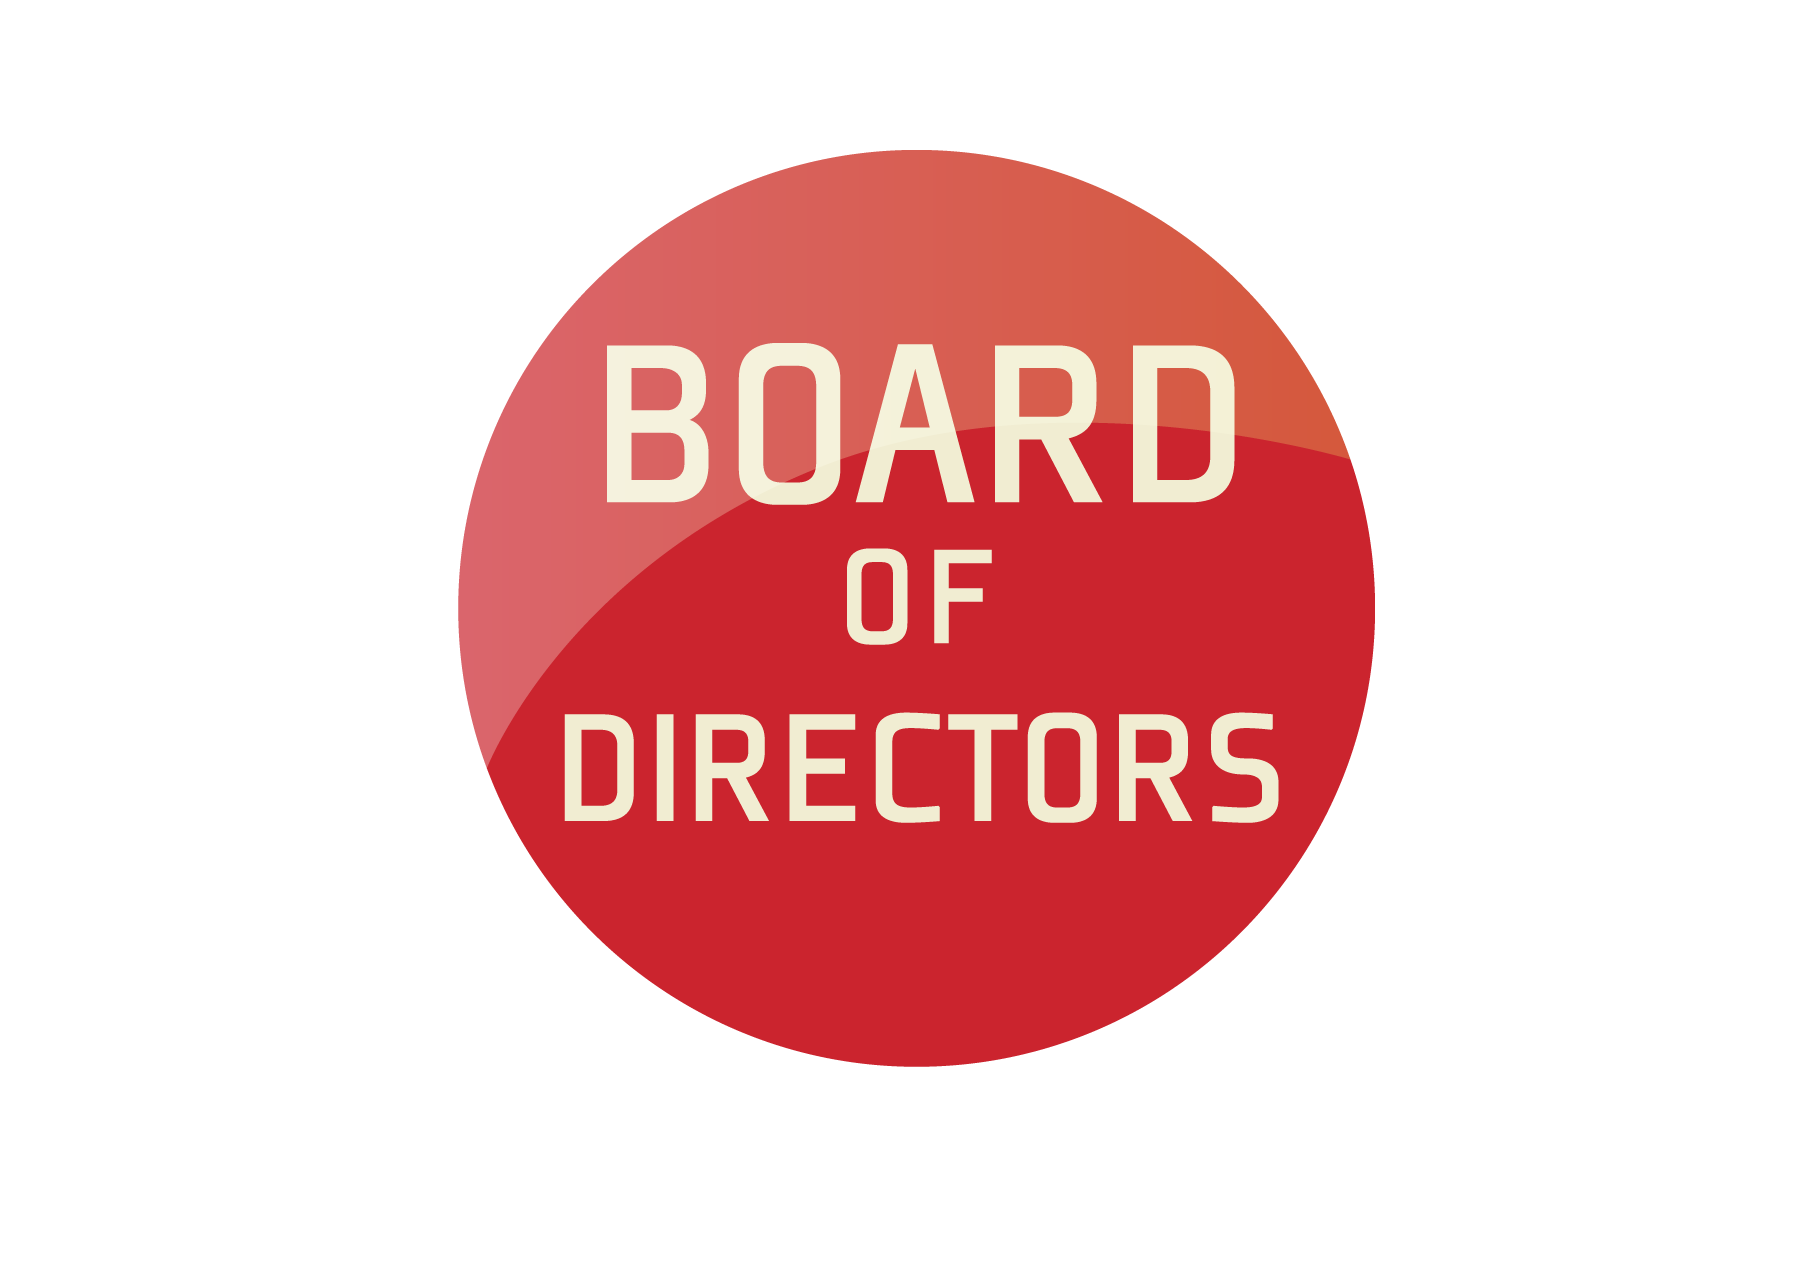 BOARD OF DIRECTORS ICON-01.png